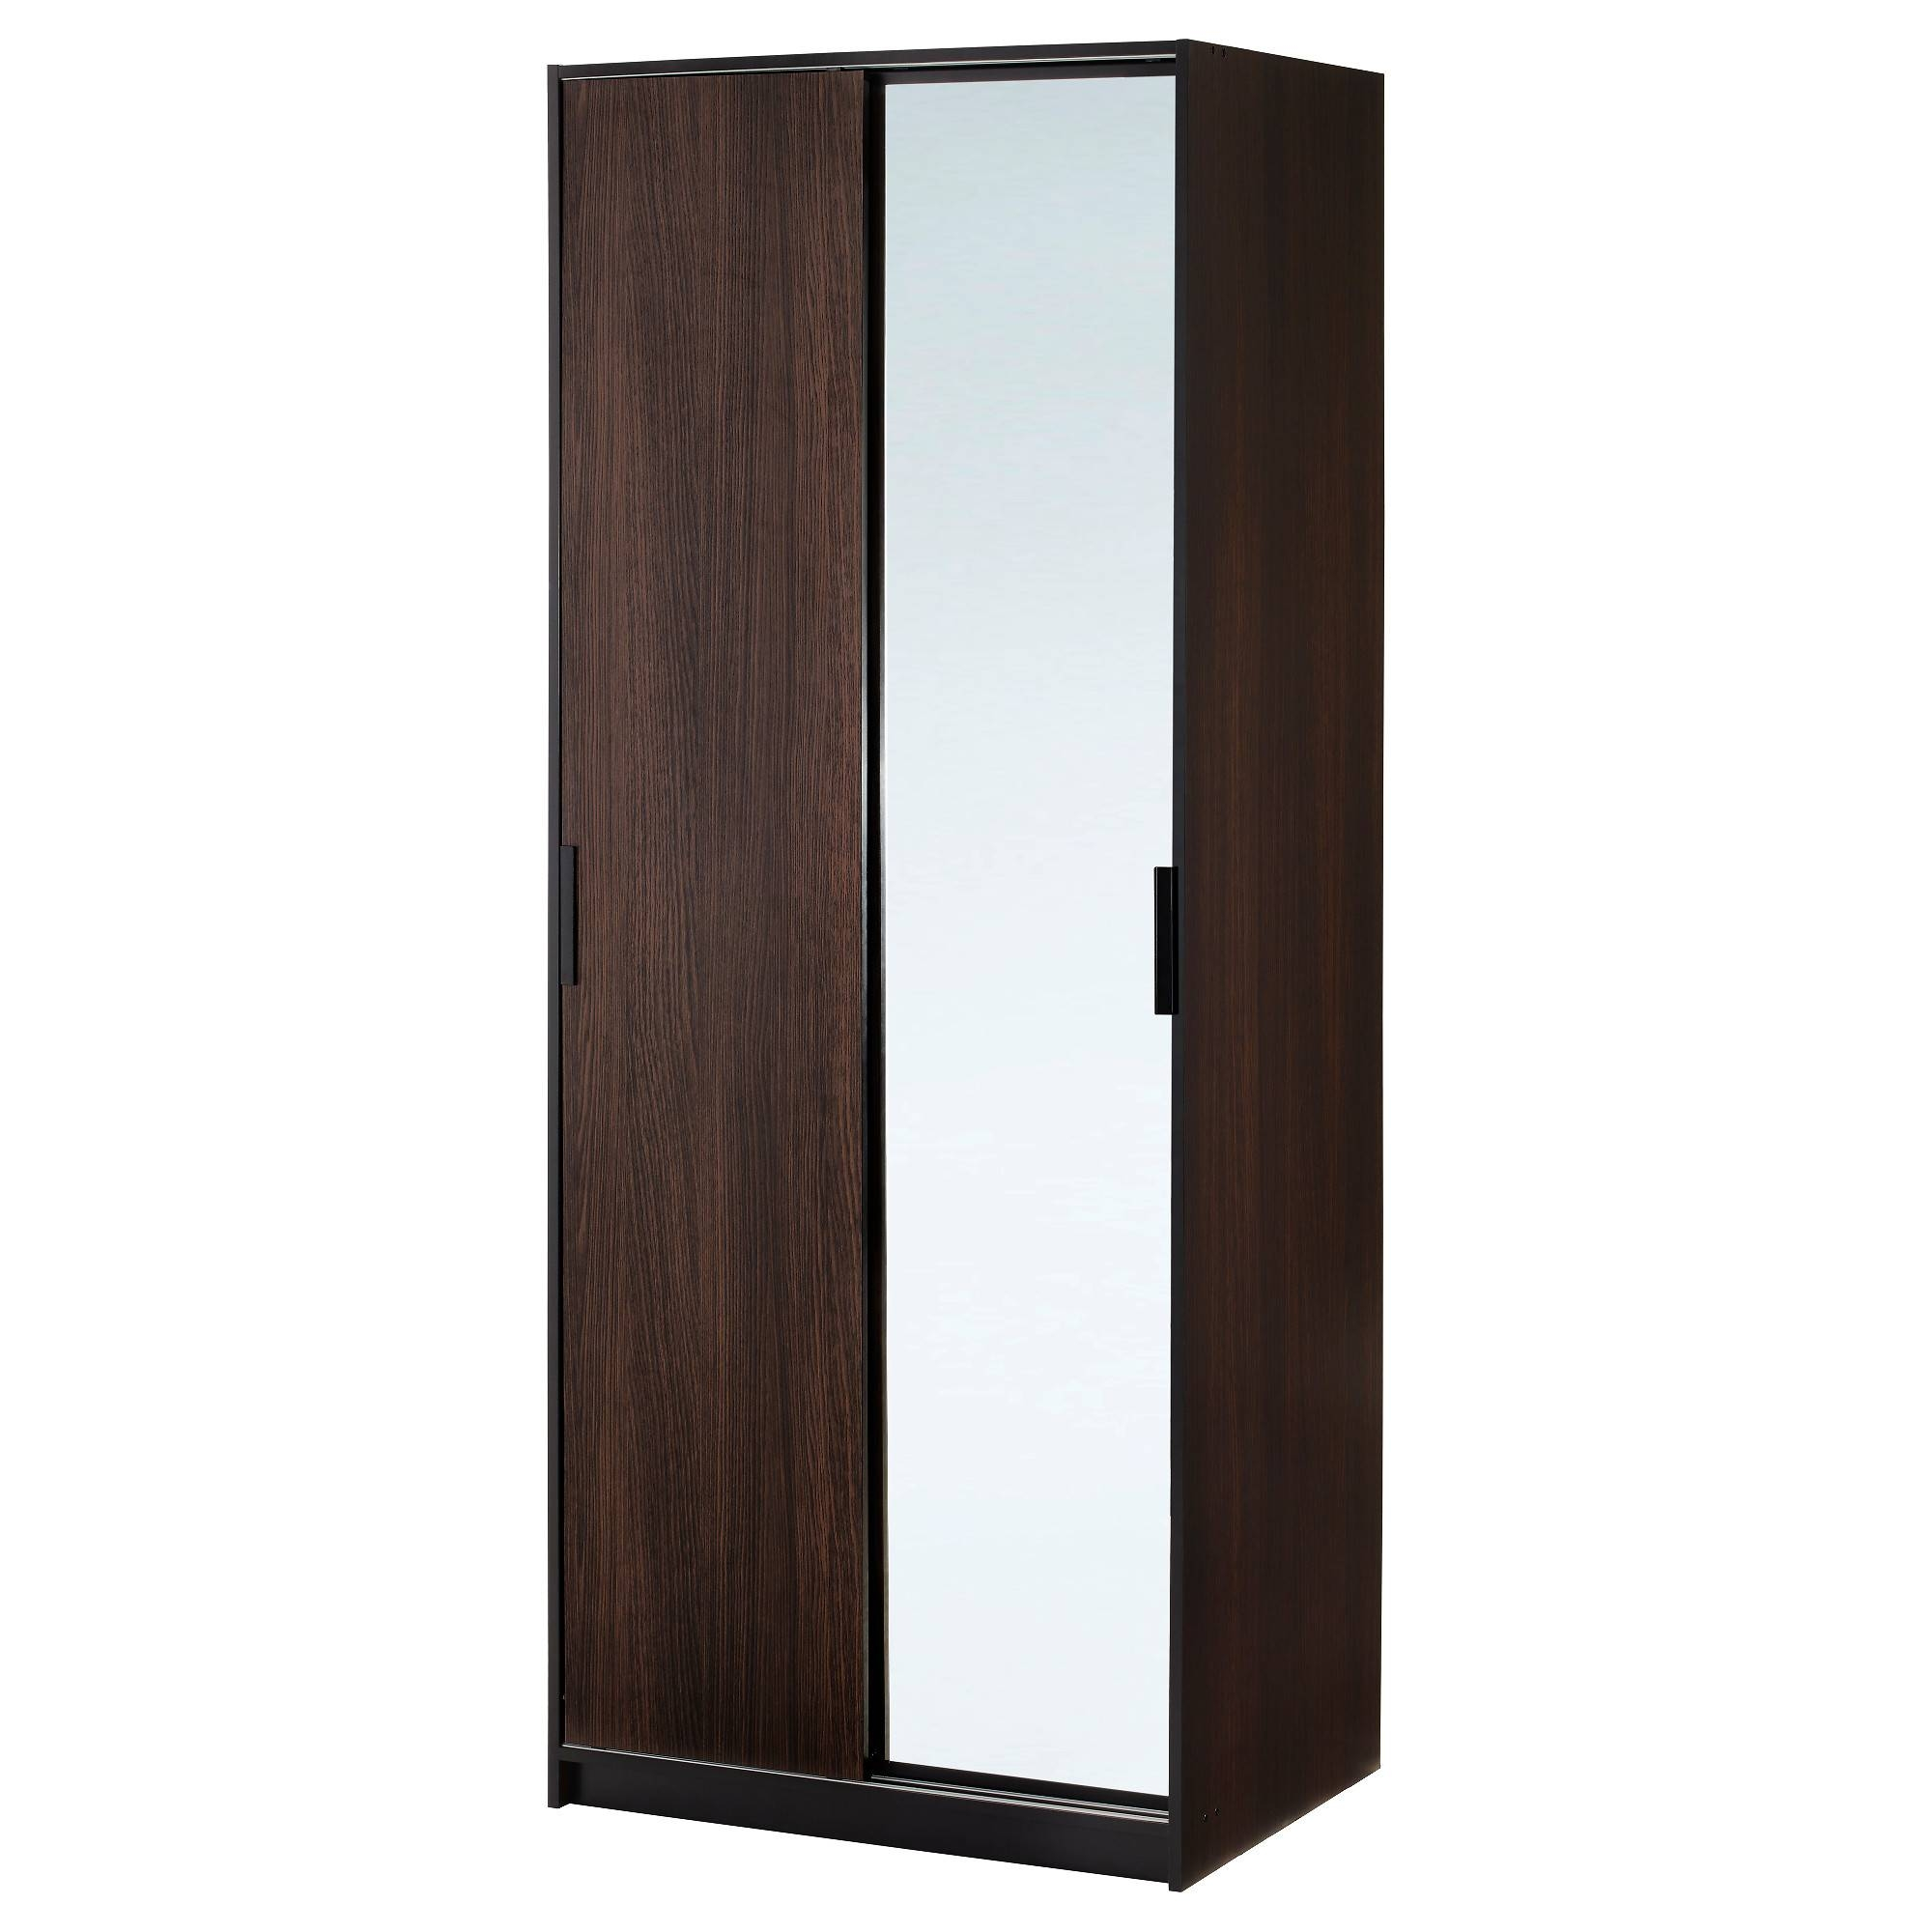 Wardrobes, Armoires & Closets - Ikea pertaining to Dark Wood Wardrobe Doors (Image 29 of 30)